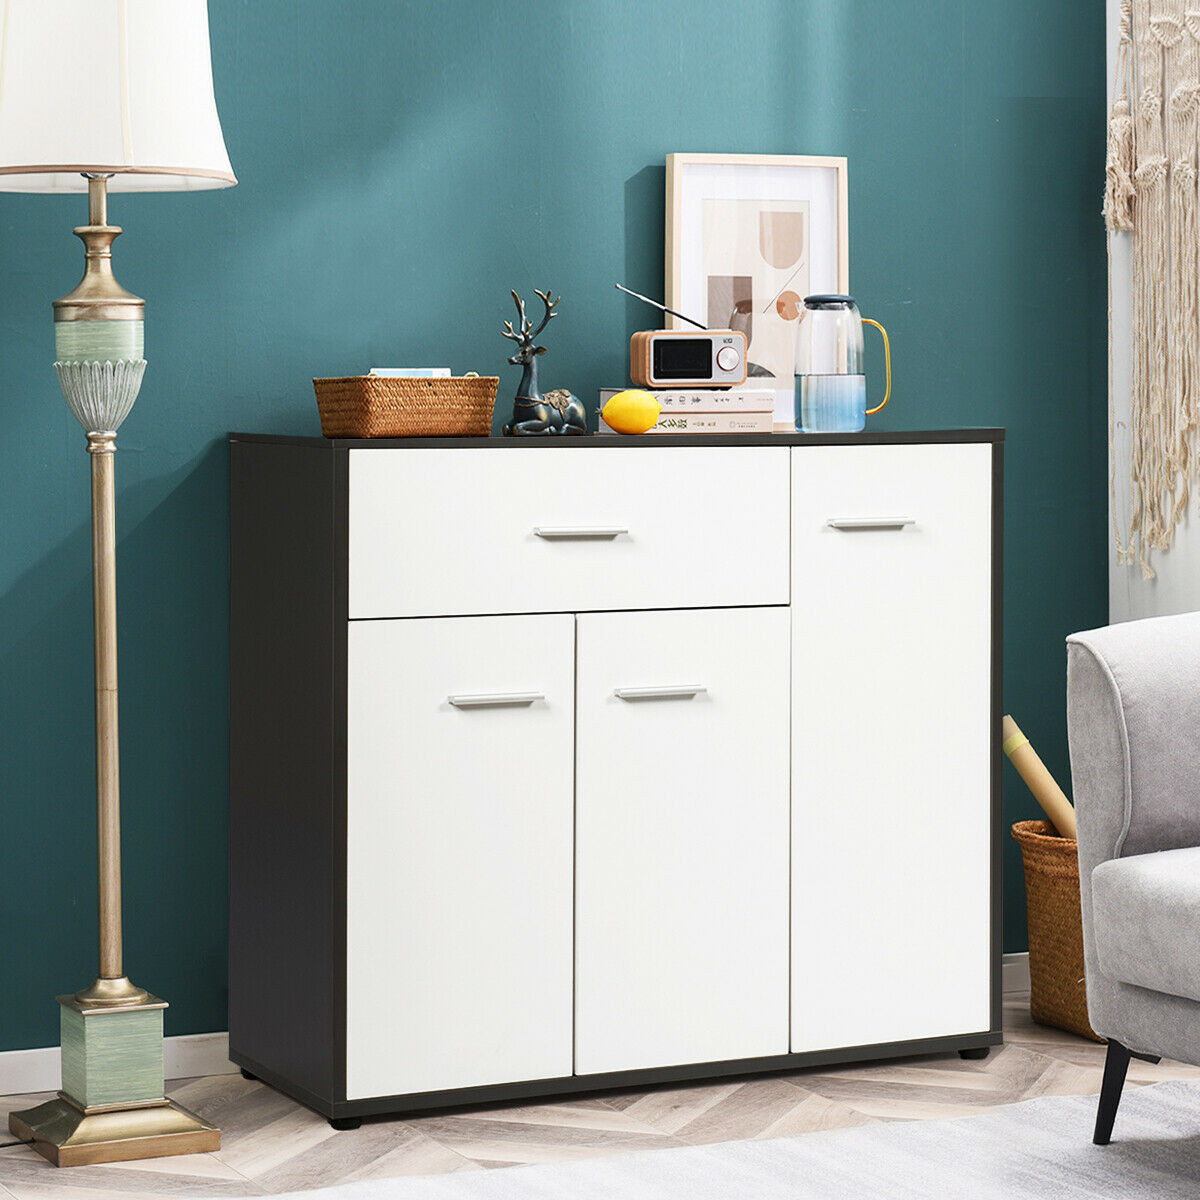 Buffet Sideboard Storing Cabinet Table Unit Chipboard Solid Structure Sideboard Large Storage Dining Room Cabinets Sideboards Aliexpress